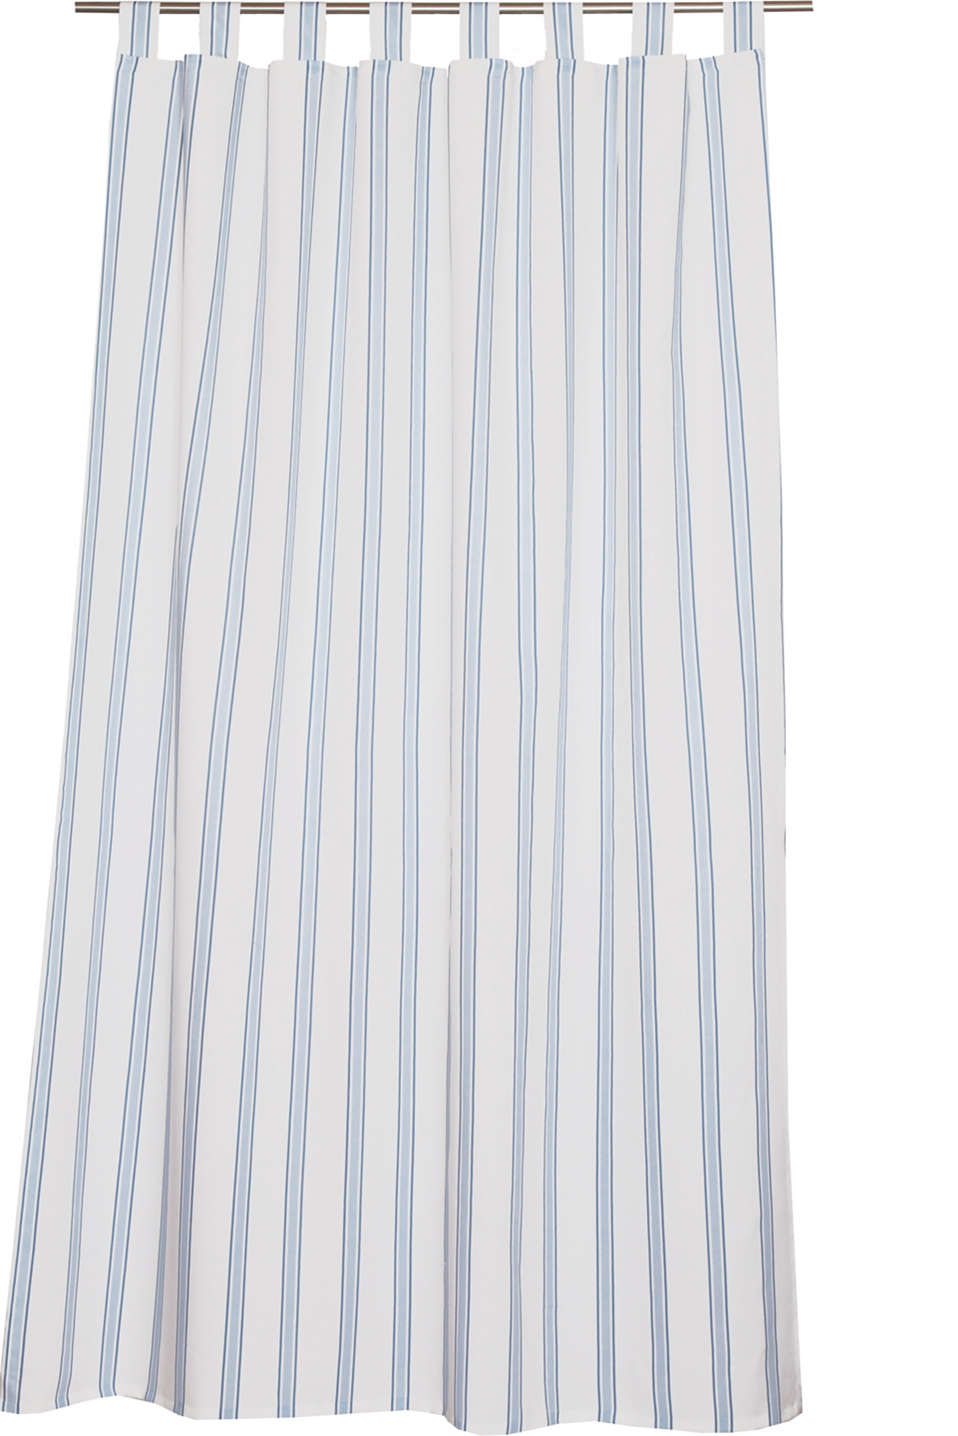 Esprit - Opaque tab top curtain with a striped print